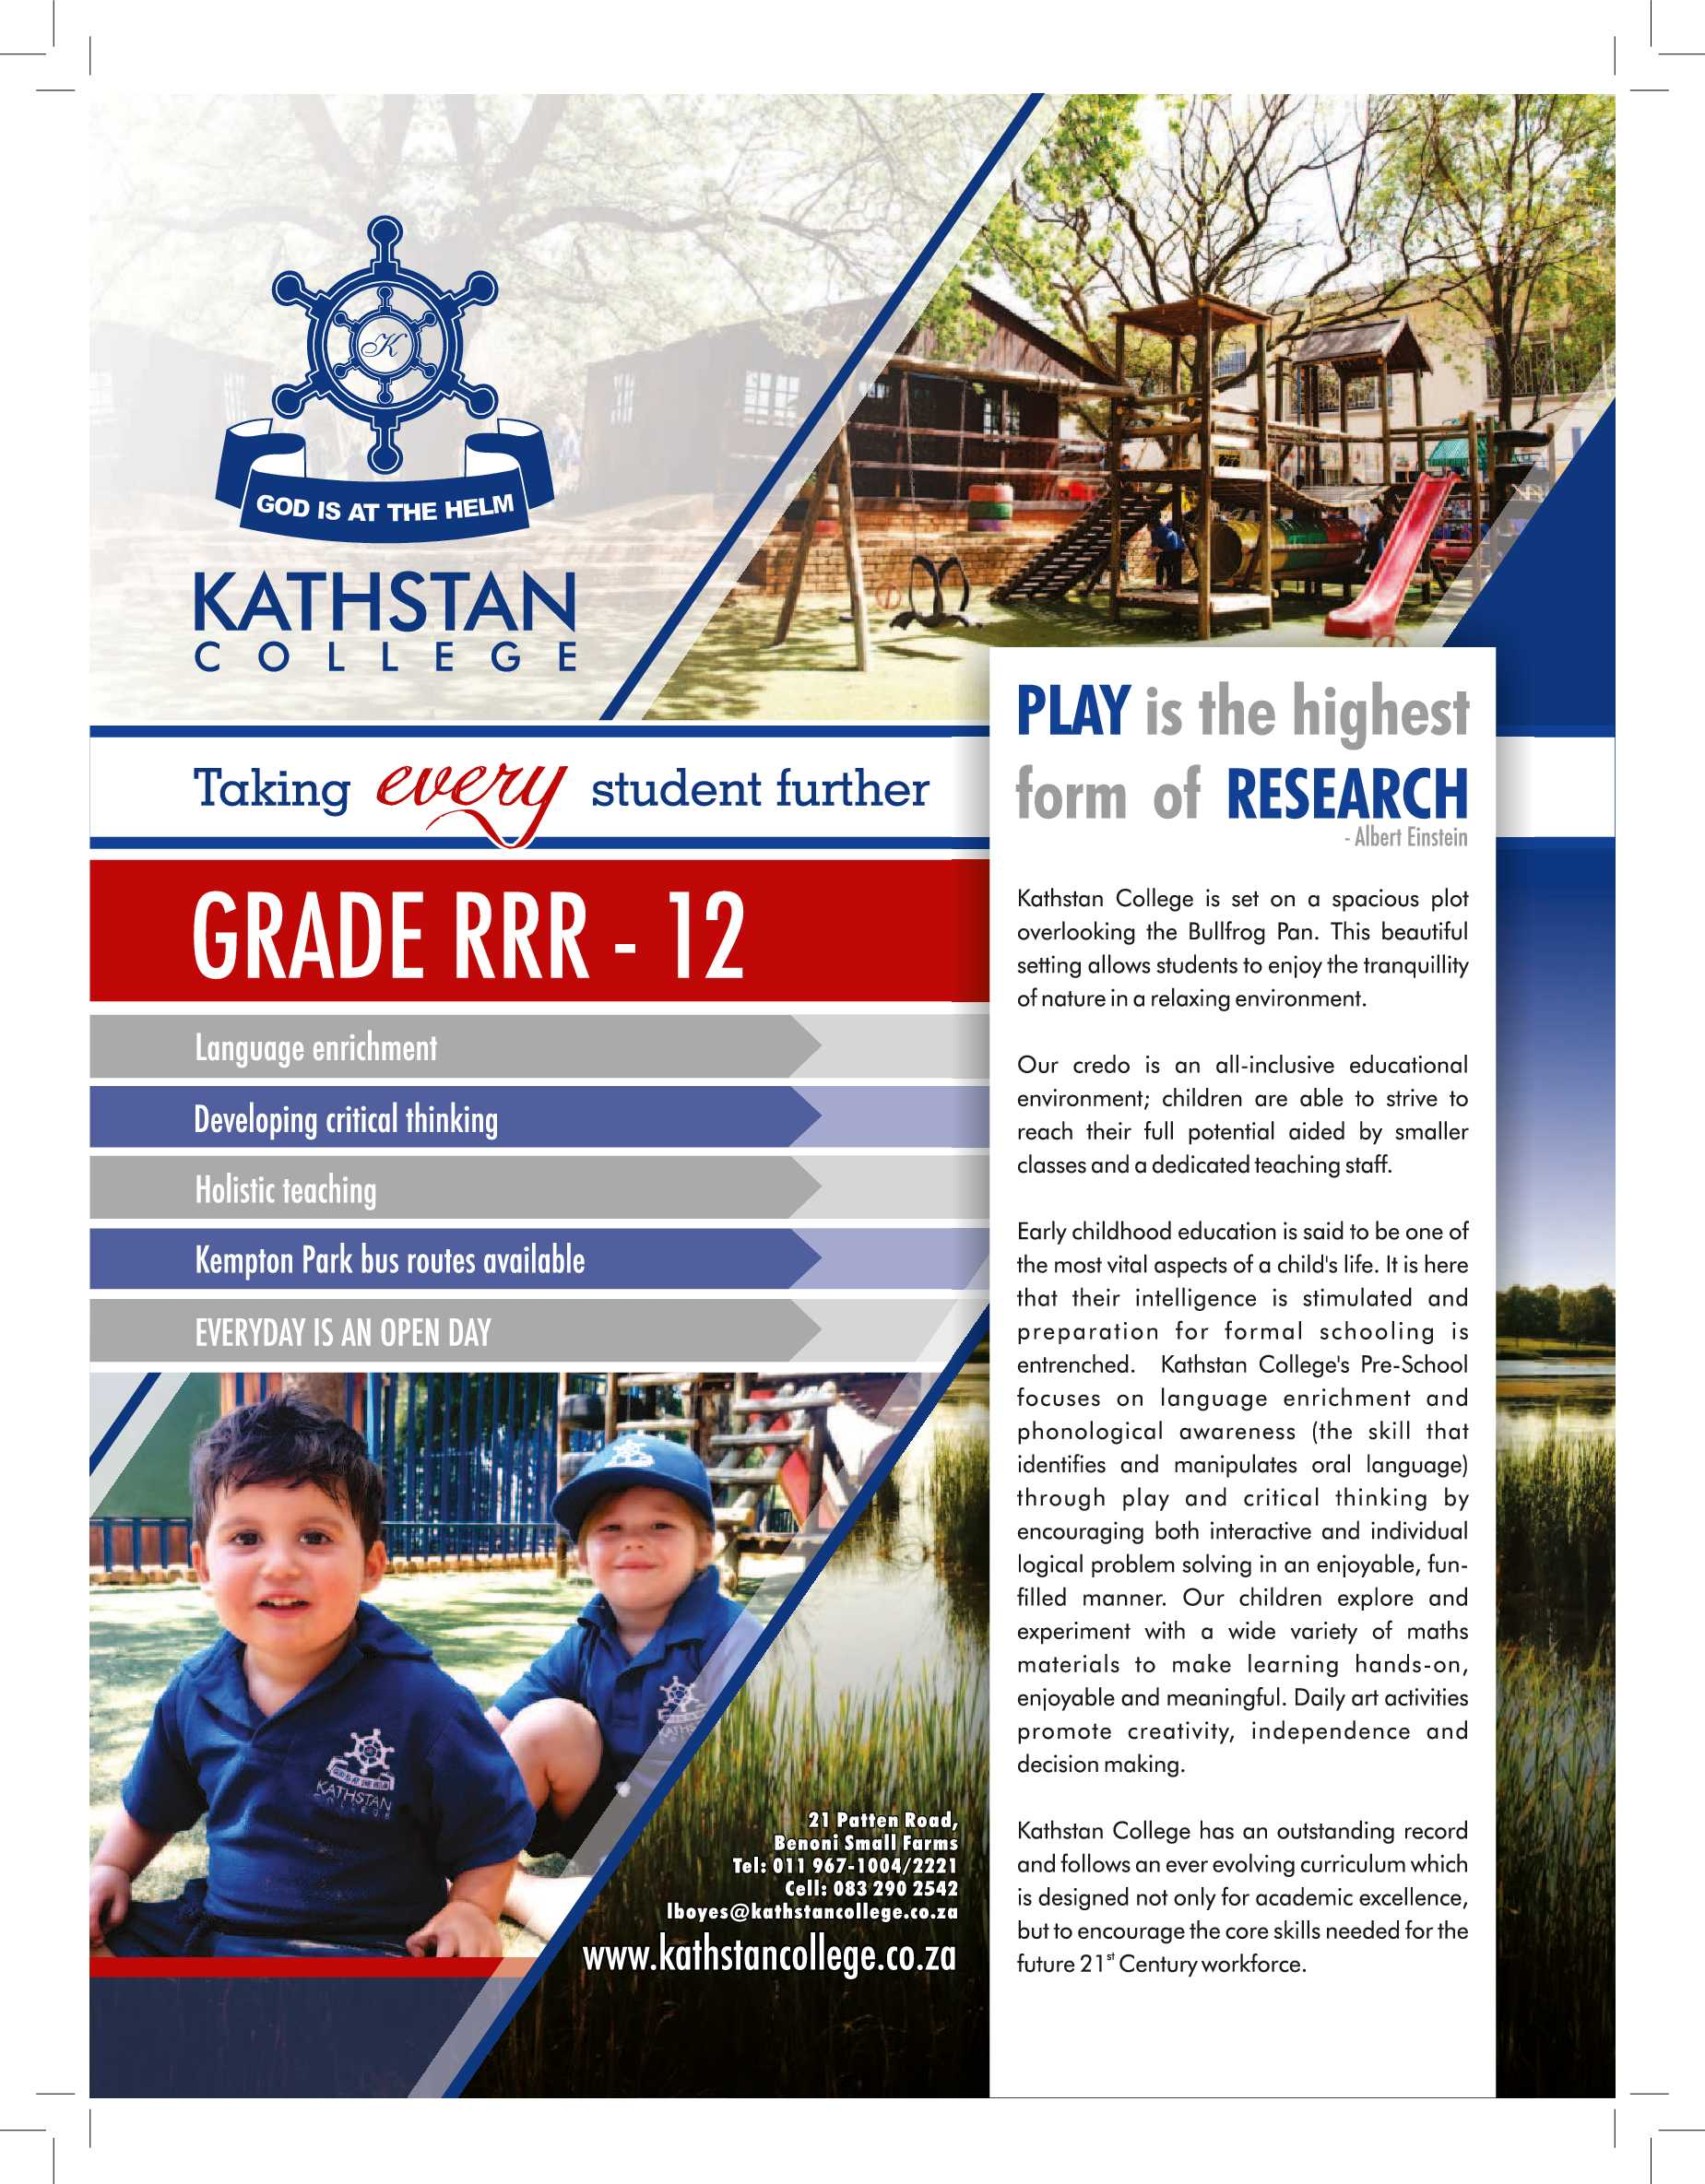 get-east-july-2017-epapers-page-25